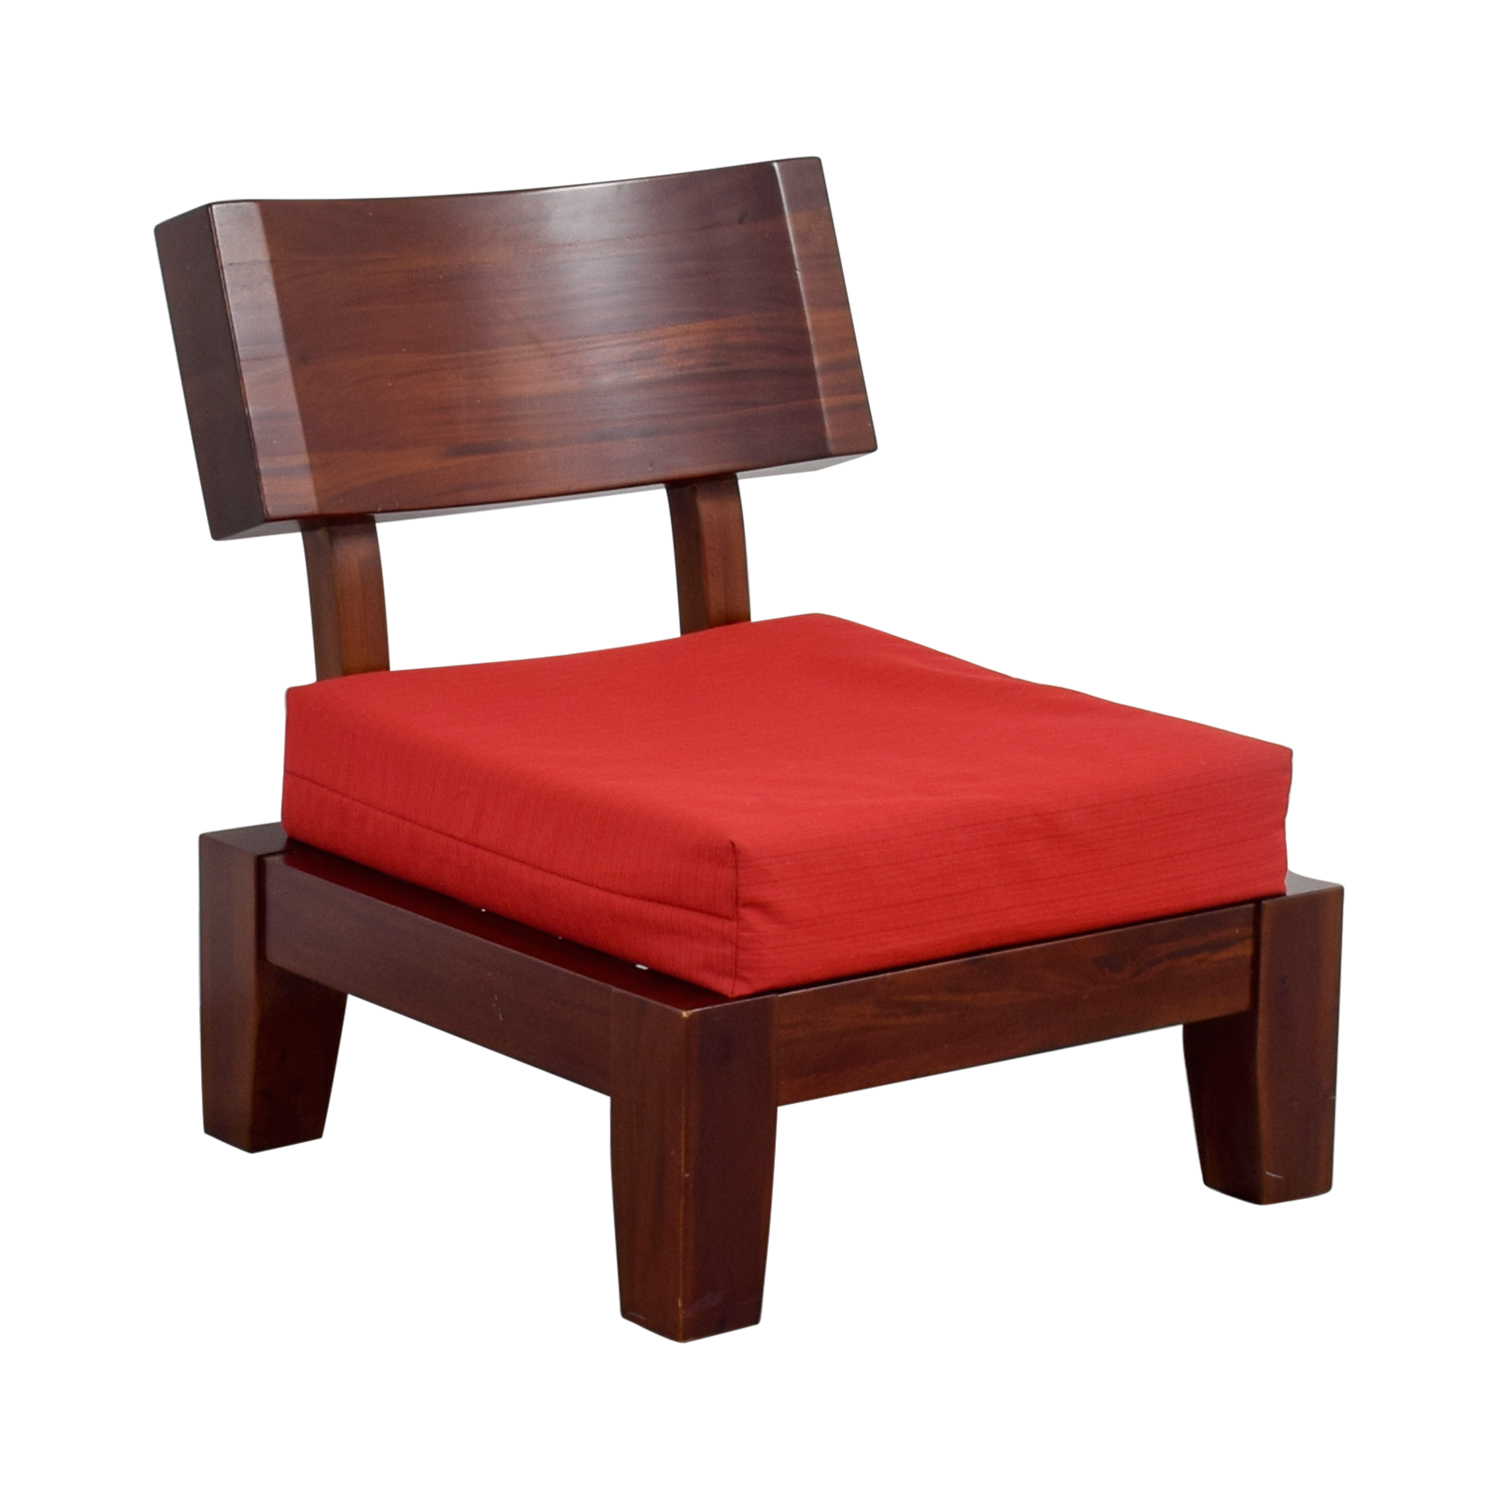 Sleeping Chair 74 Off Haverty Haverty Red Wood Sleeper Chair Chairs